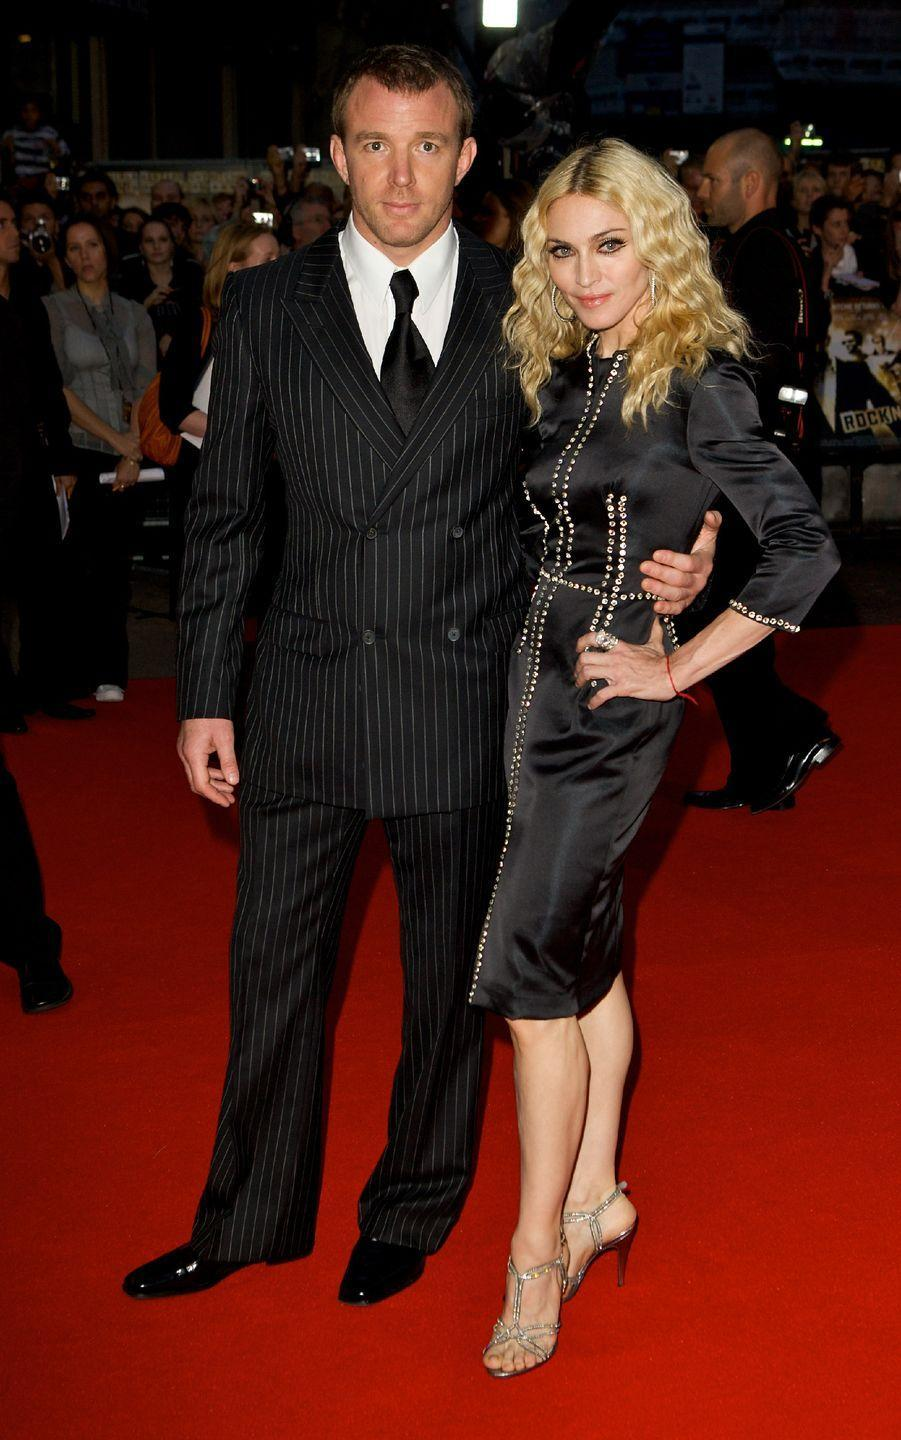 """<p><strong>Settlement:</strong> <a href=""""http://www.today.com/id/28239302/ns/today-today_entertainment/t/madonna-settles-ritchie-million/#.V-LoNDuaJHg"""" rel=""""nofollow noopener"""" target=""""_blank"""" data-ylk=""""slk:Between $76 million and $92 million"""" class=""""link rapid-noclick-resp"""">Between $76 million and $92 million</a></p><p>Their multi-million dollar settlement came in 2008, when the singer and film director decided to divorce after being married for just under eight years. Ritchie claims being with her was like being in a soap opera, while Madonna said the split was due to a loss of heat in their relationship. </p><p>""""Then time goes by, and you share a life, you have children, and there are cracks in the veneer. It's not as romantic as it used to be,"""" <a href=""""http://www.newsweek.com/madonna-lady-gaga-we-her-new-album-64351"""" rel=""""nofollow noopener"""" target=""""_blank"""" data-ylk=""""slk:she said"""" class=""""link rapid-noclick-resp"""">she said</a>.</p>"""